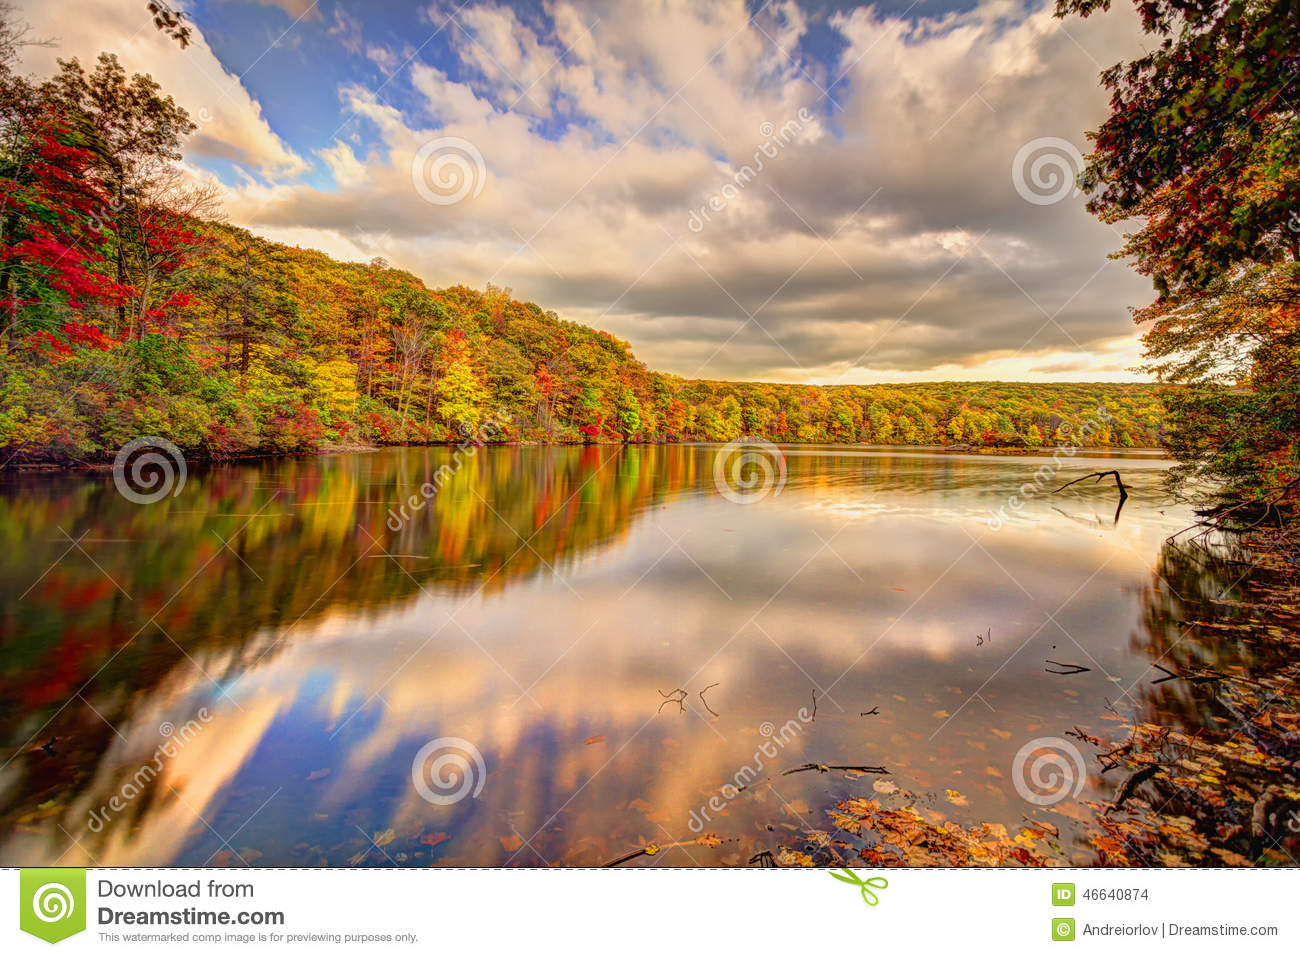 Nature Images 2mb: Colorful Fall Scenery Landscapes. Stock Photo